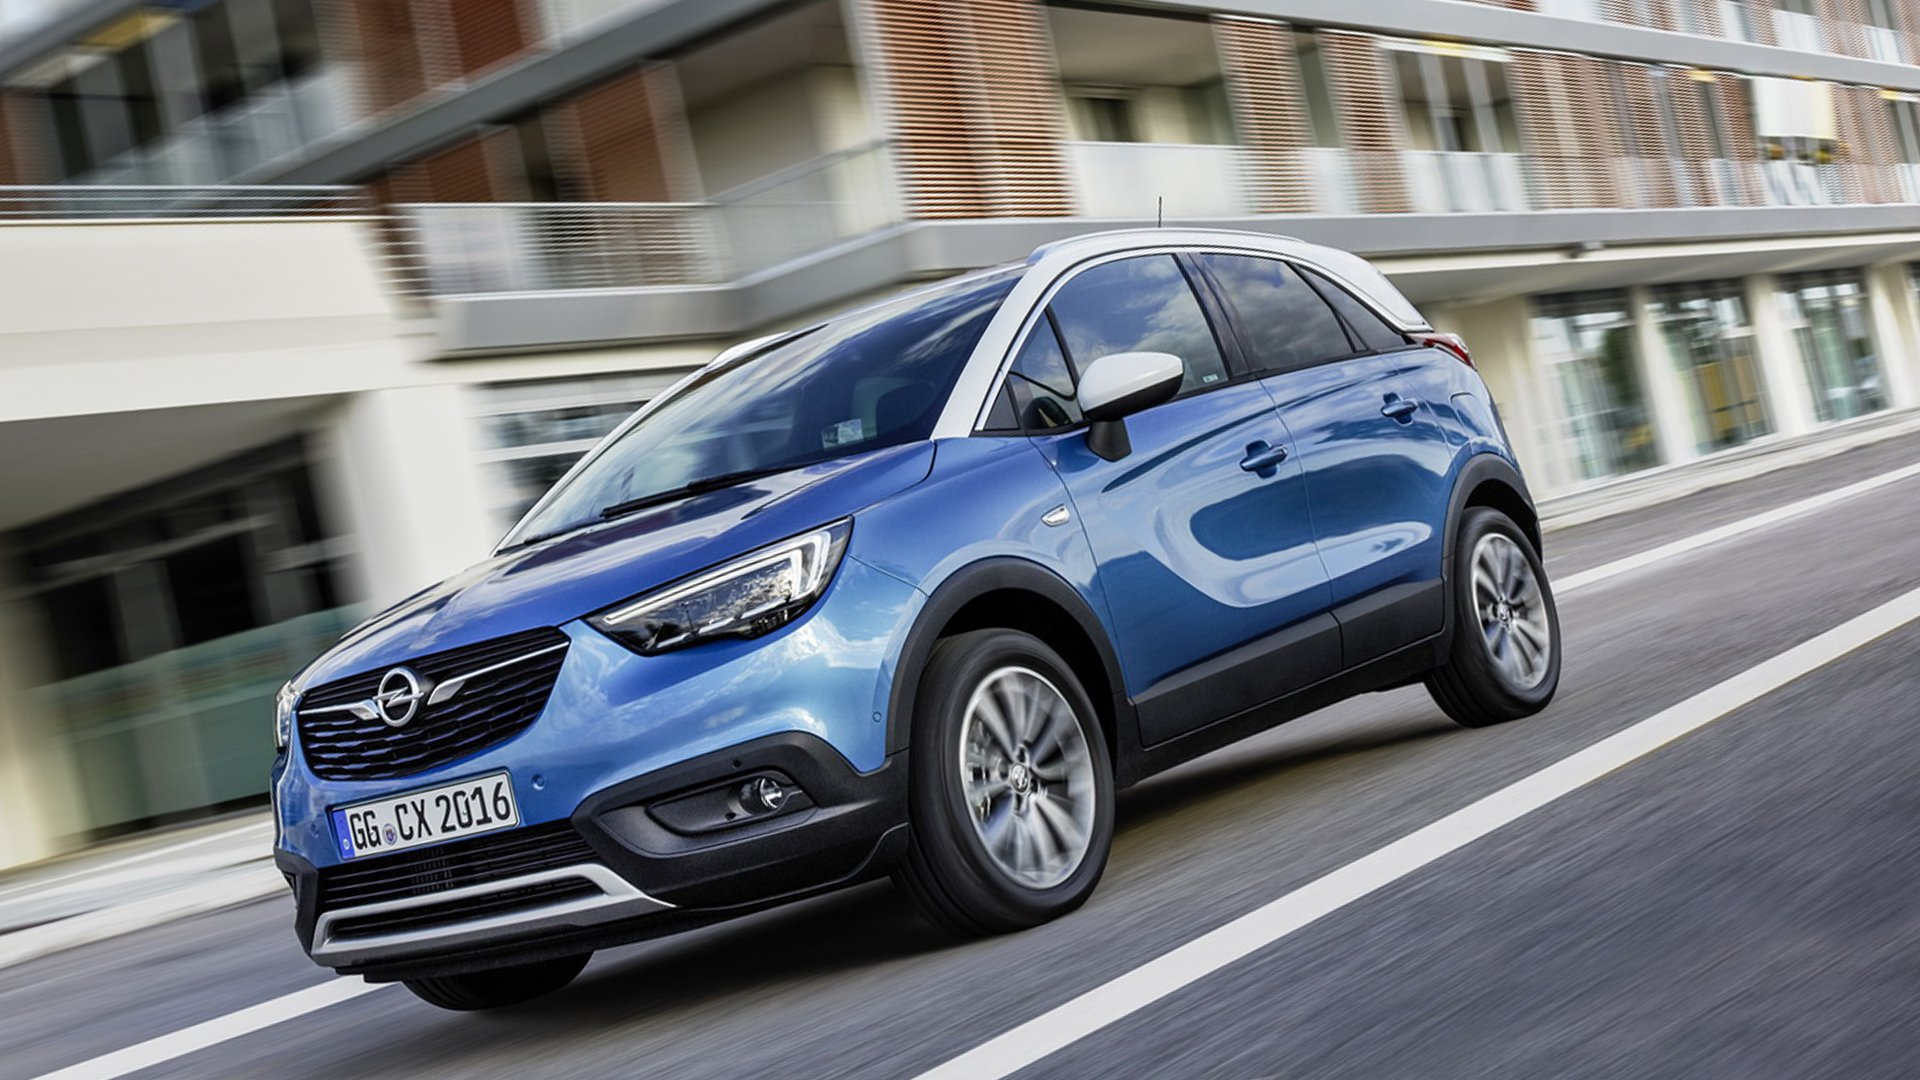 New 2019 Opel Crossland X Wallpaper HD Desktop